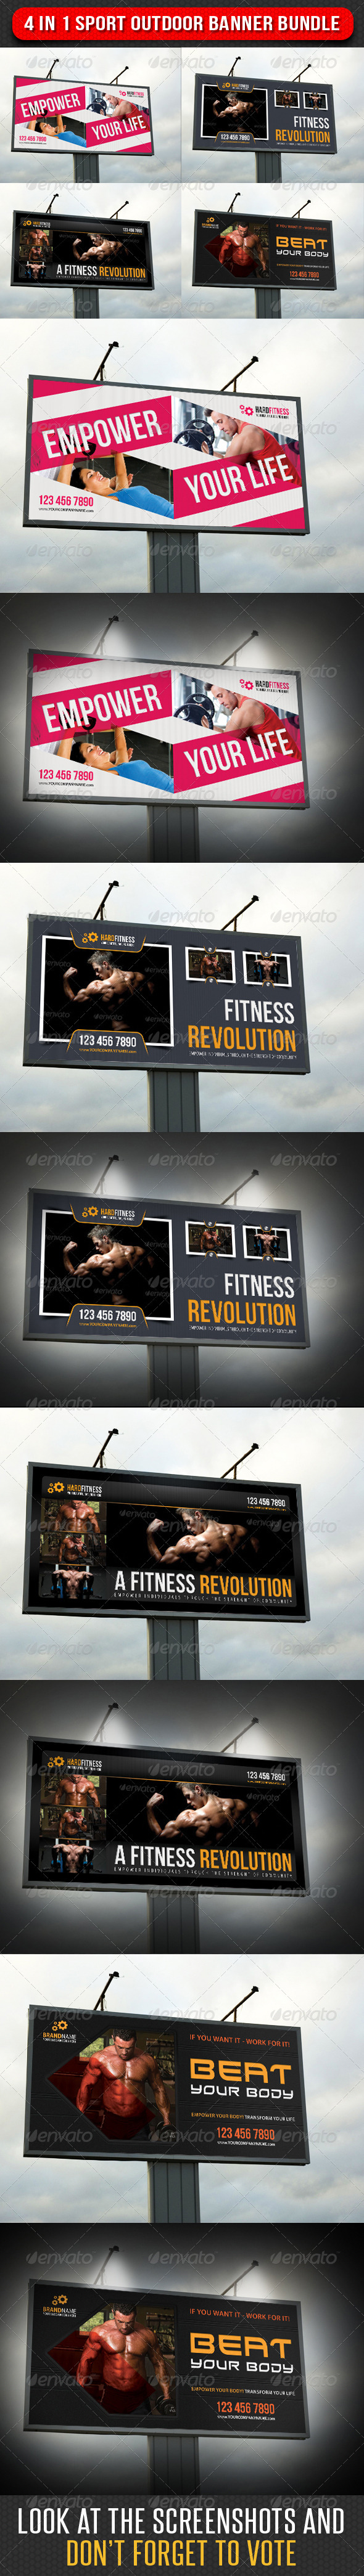 GraphicRiver 4 in 1 Sport Outdoor Banner Bundle 04 7126183